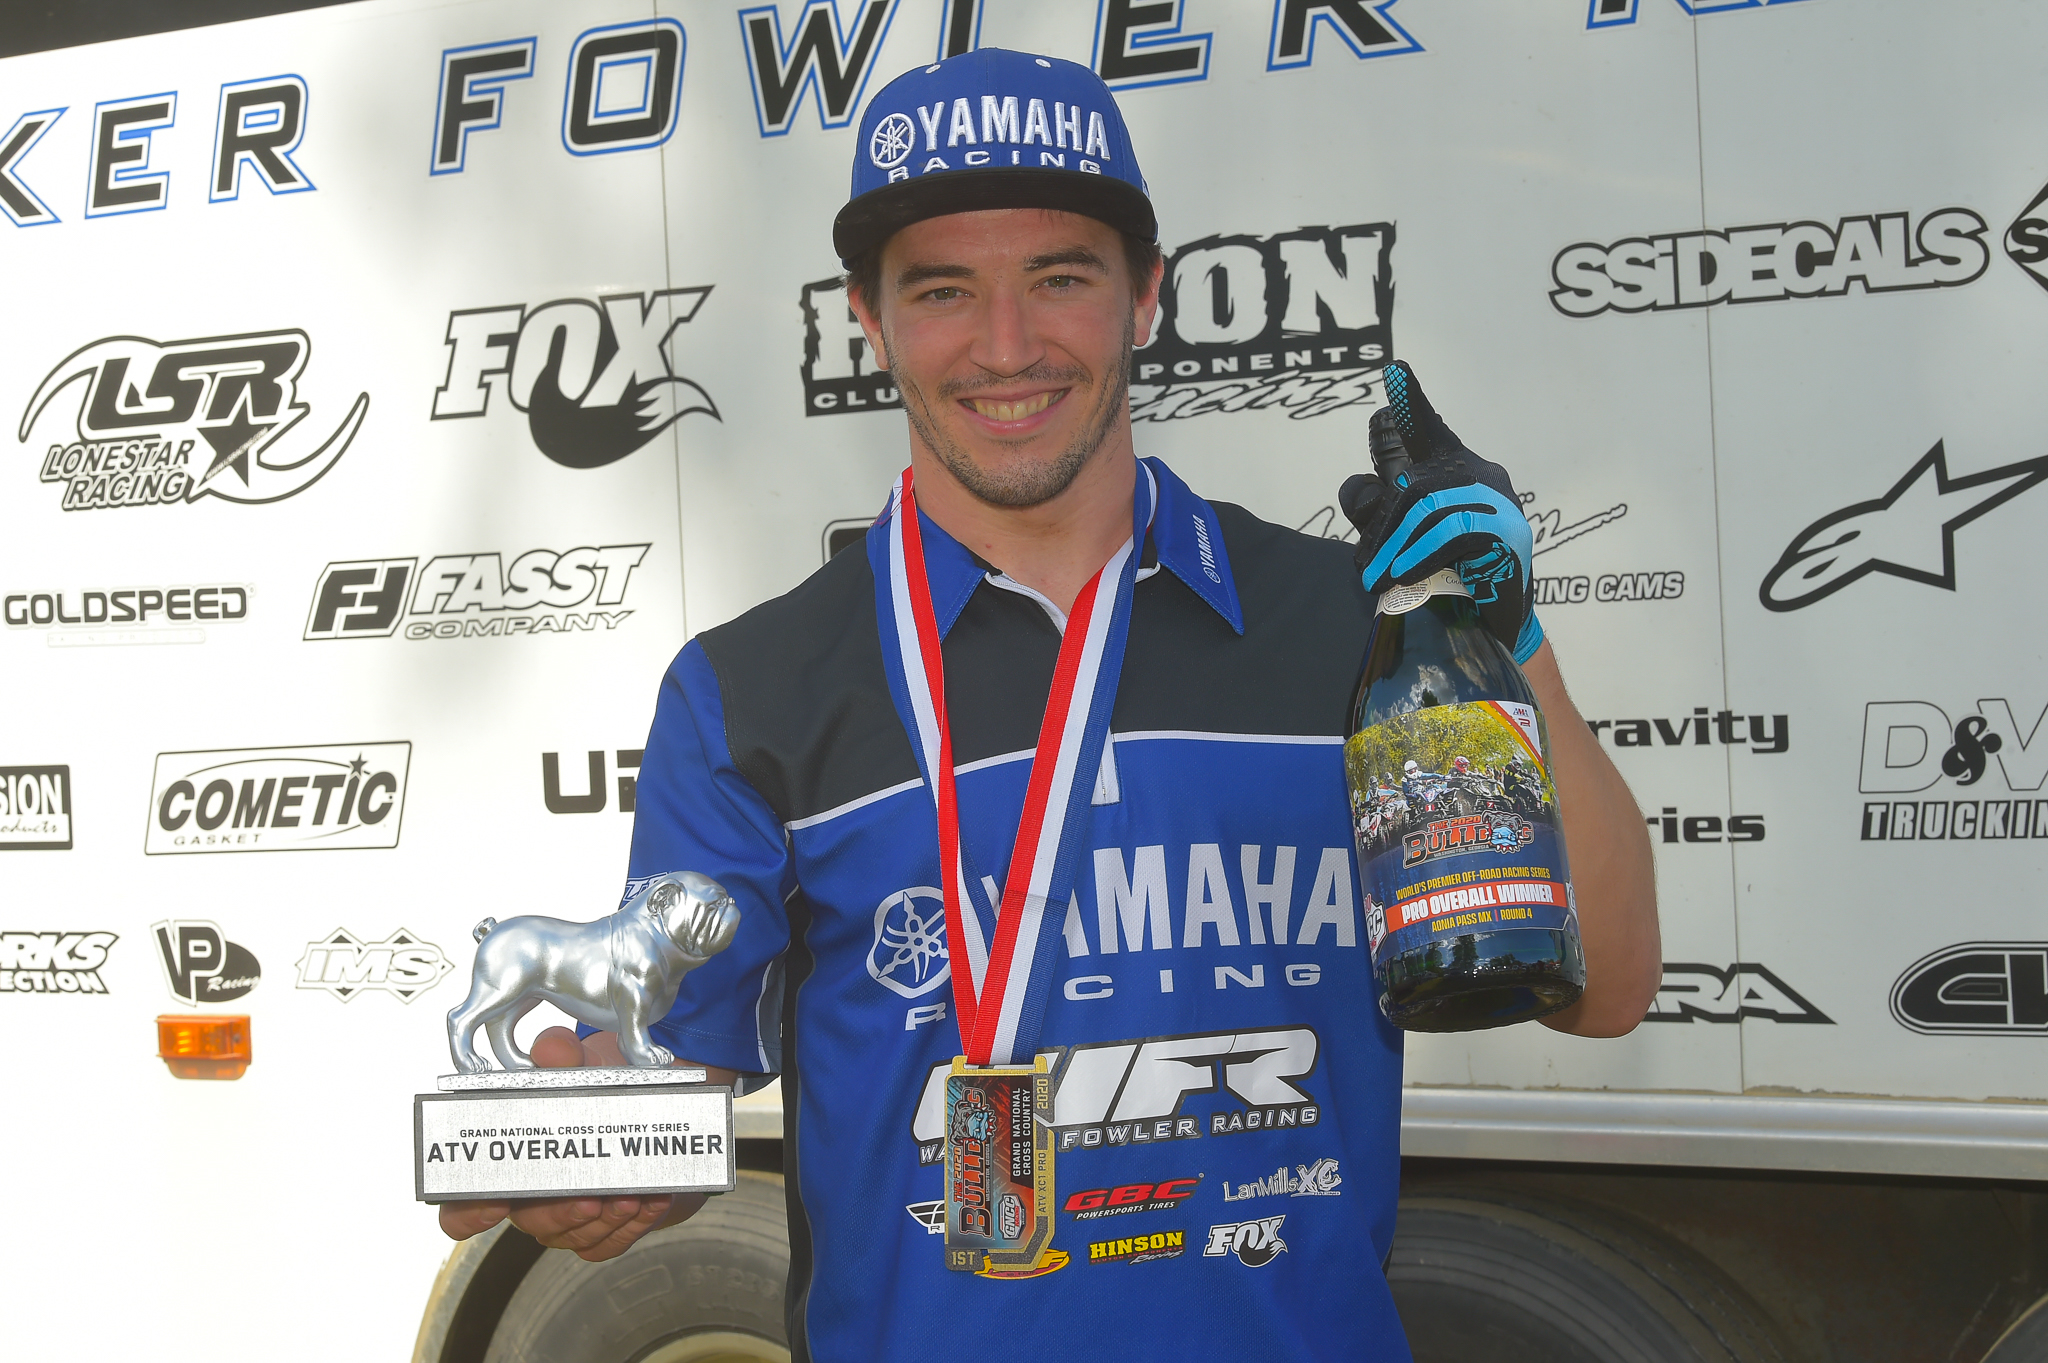 Walker Fowler, five-time GNCC XC1 Pro ATV champion, and current undefeated series leader (2)